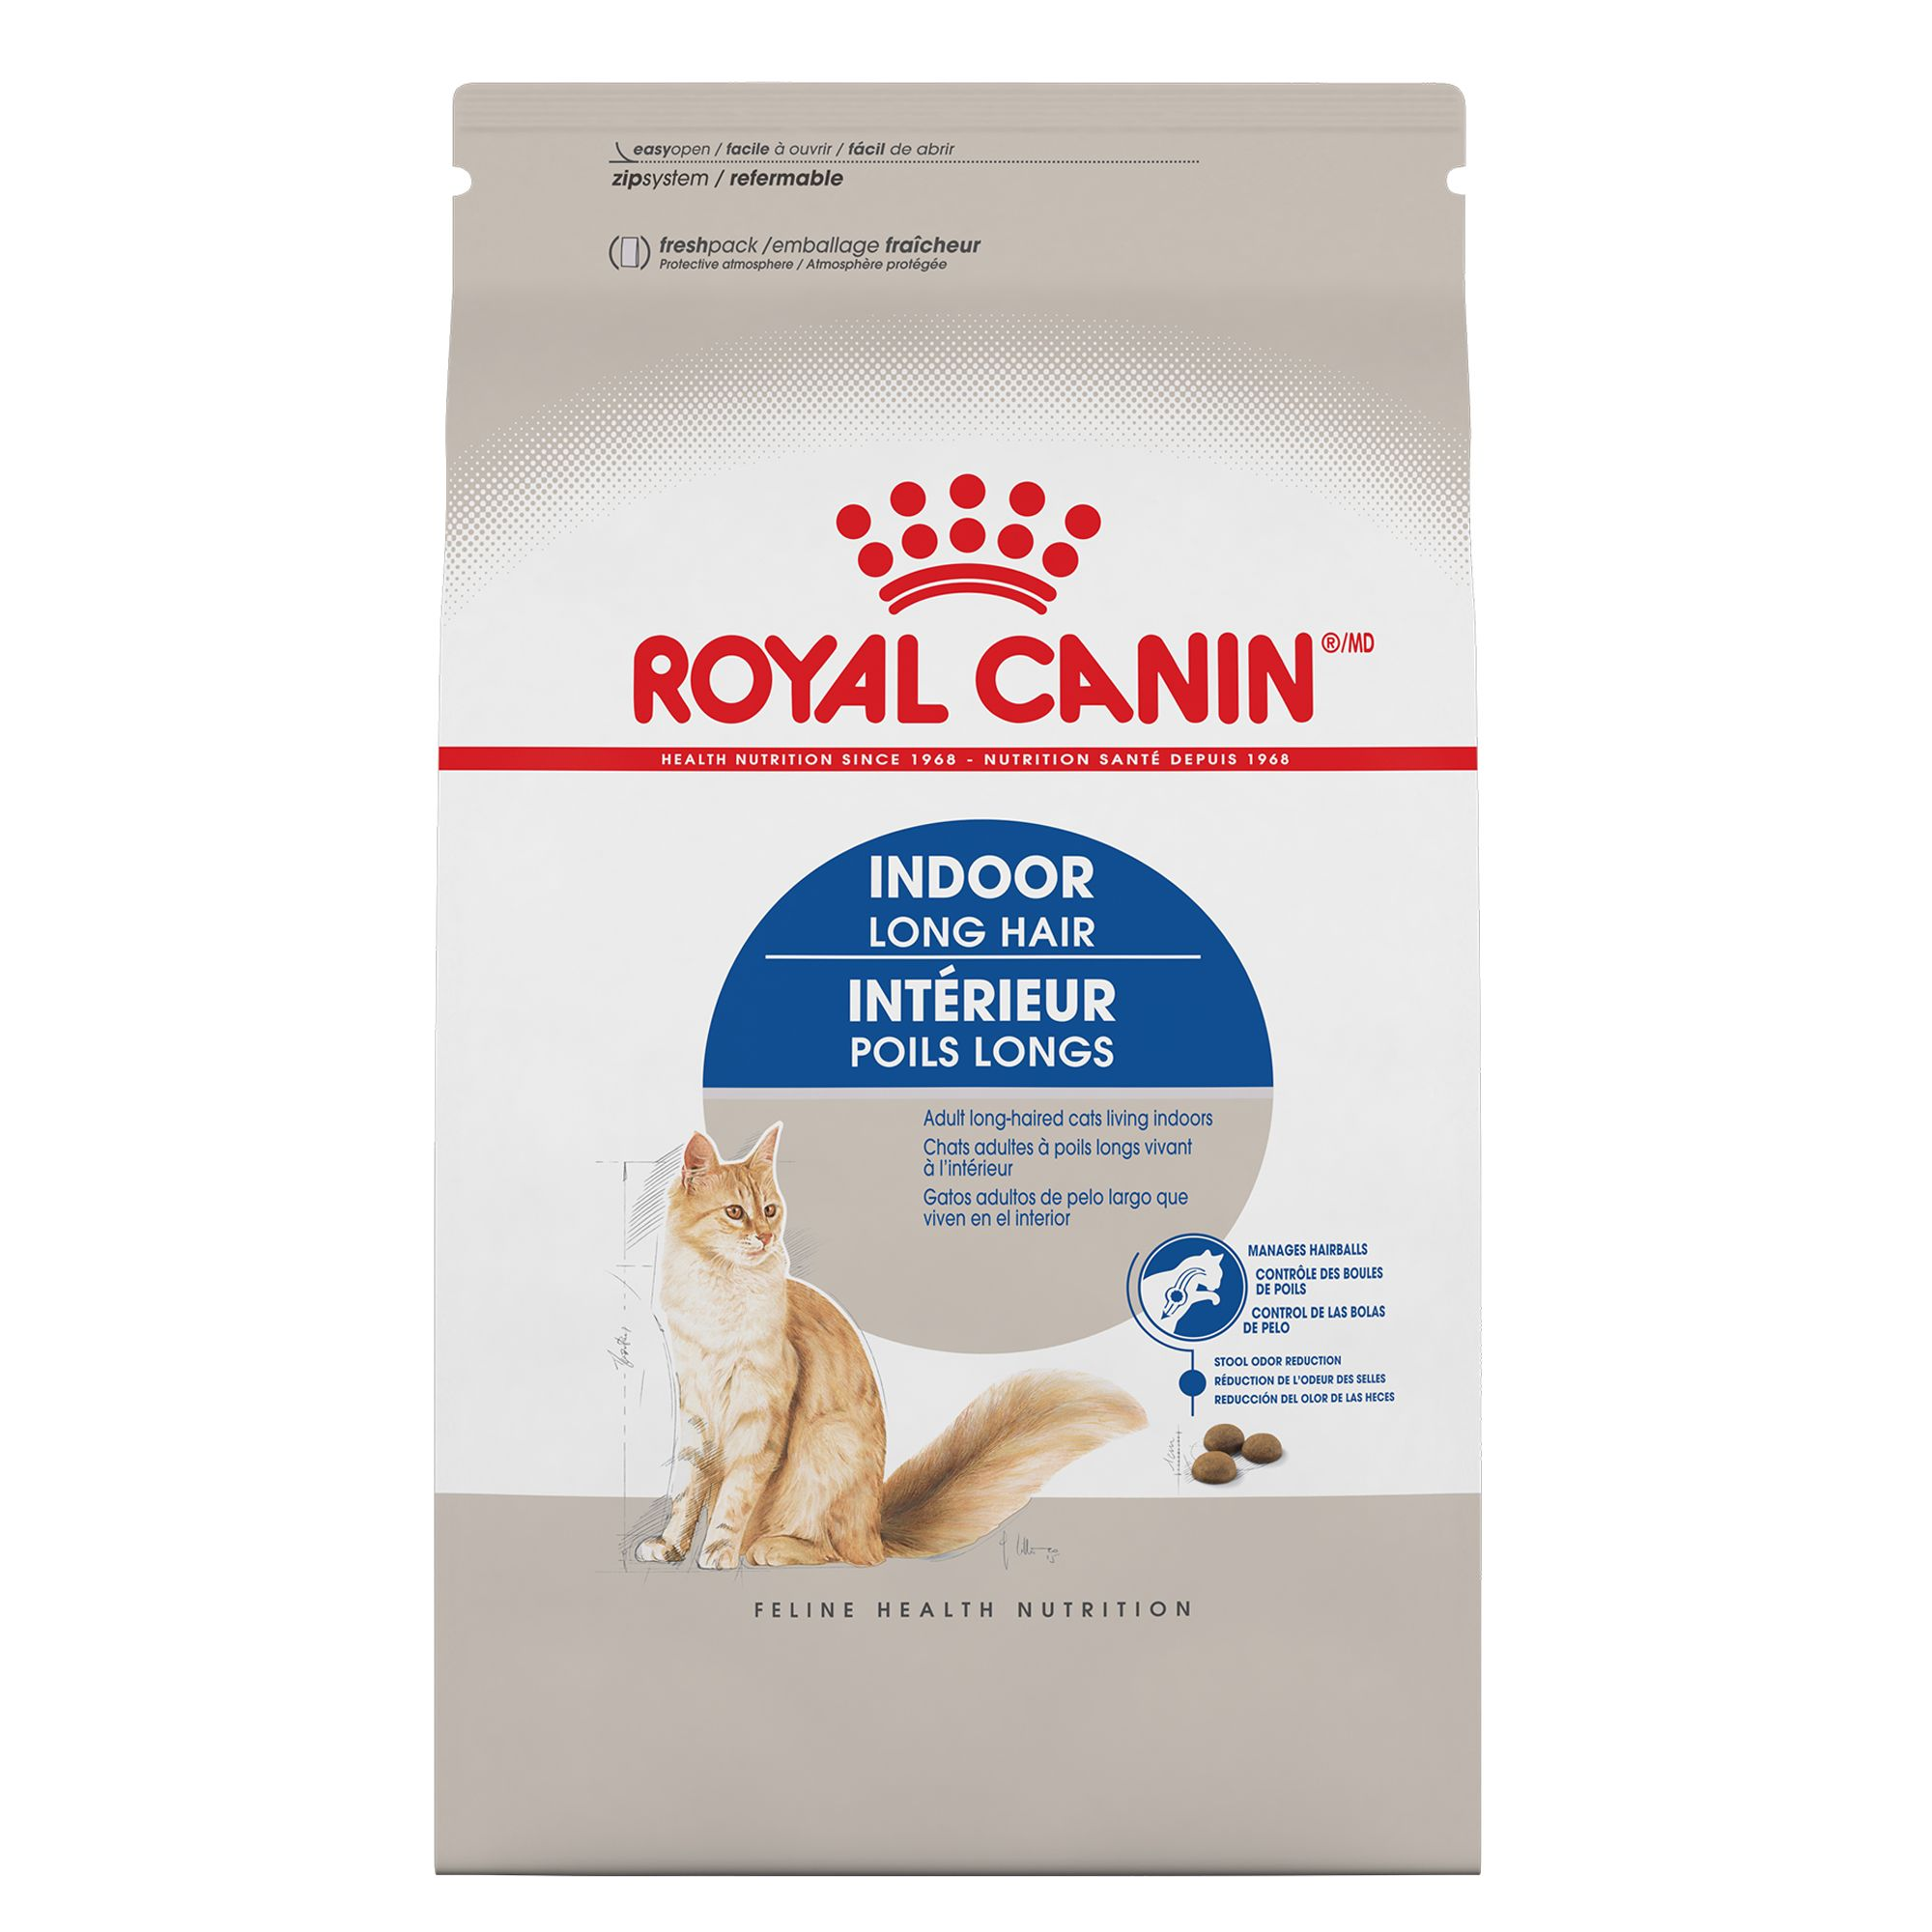 Royal Canin Feline Health Nutrition Indoor Long Hair Cat Food